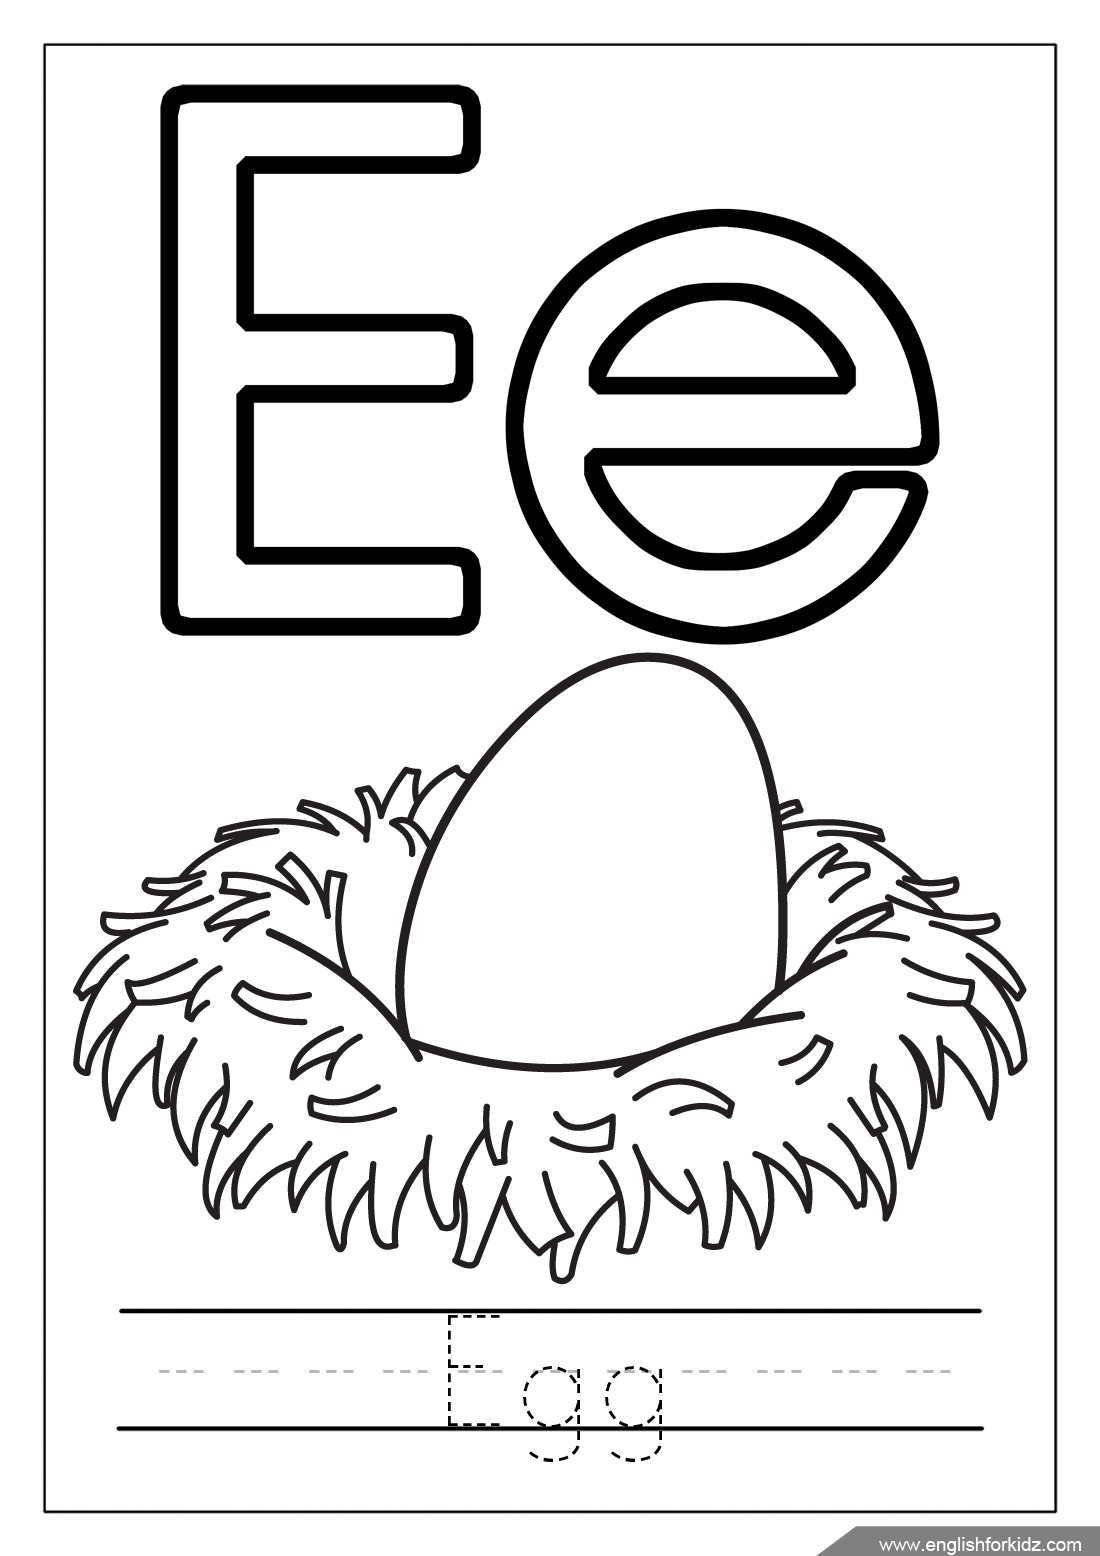 English For Kids Step By Step Printable Alphabet Coloring